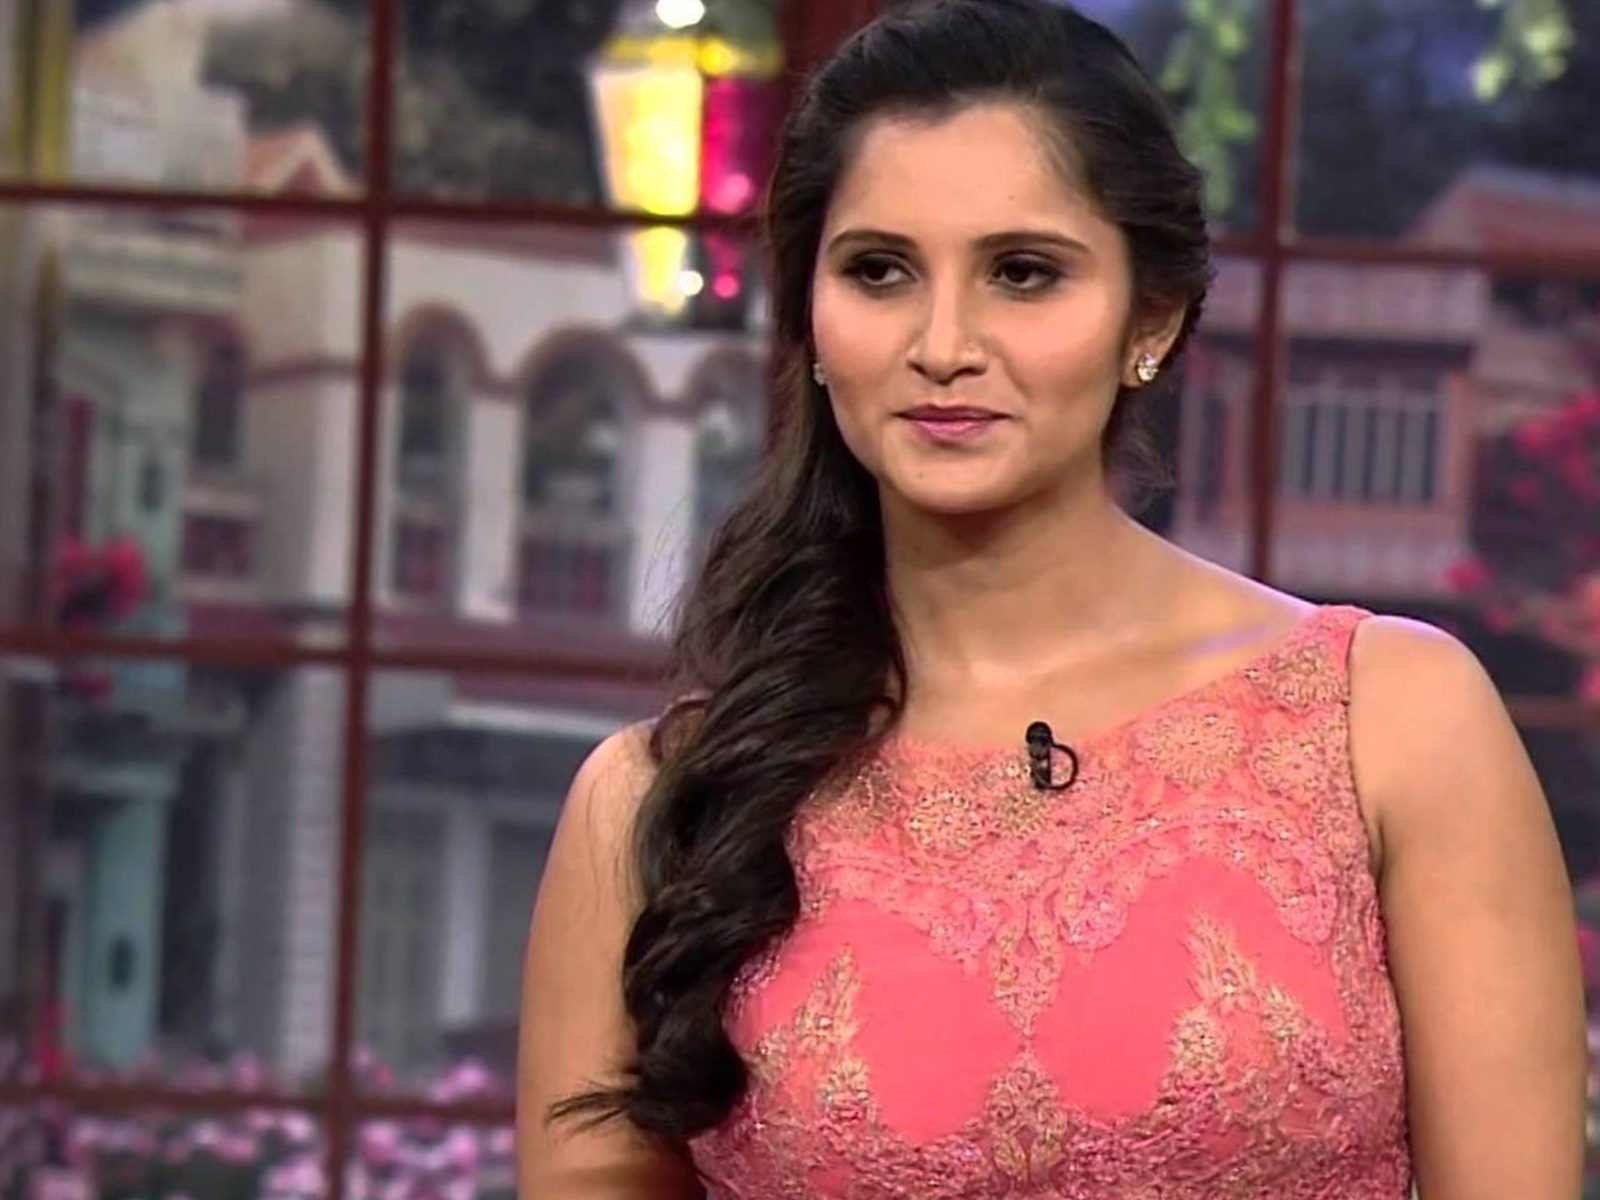 1600x1200 - Sania Mirza Wallpapers 13